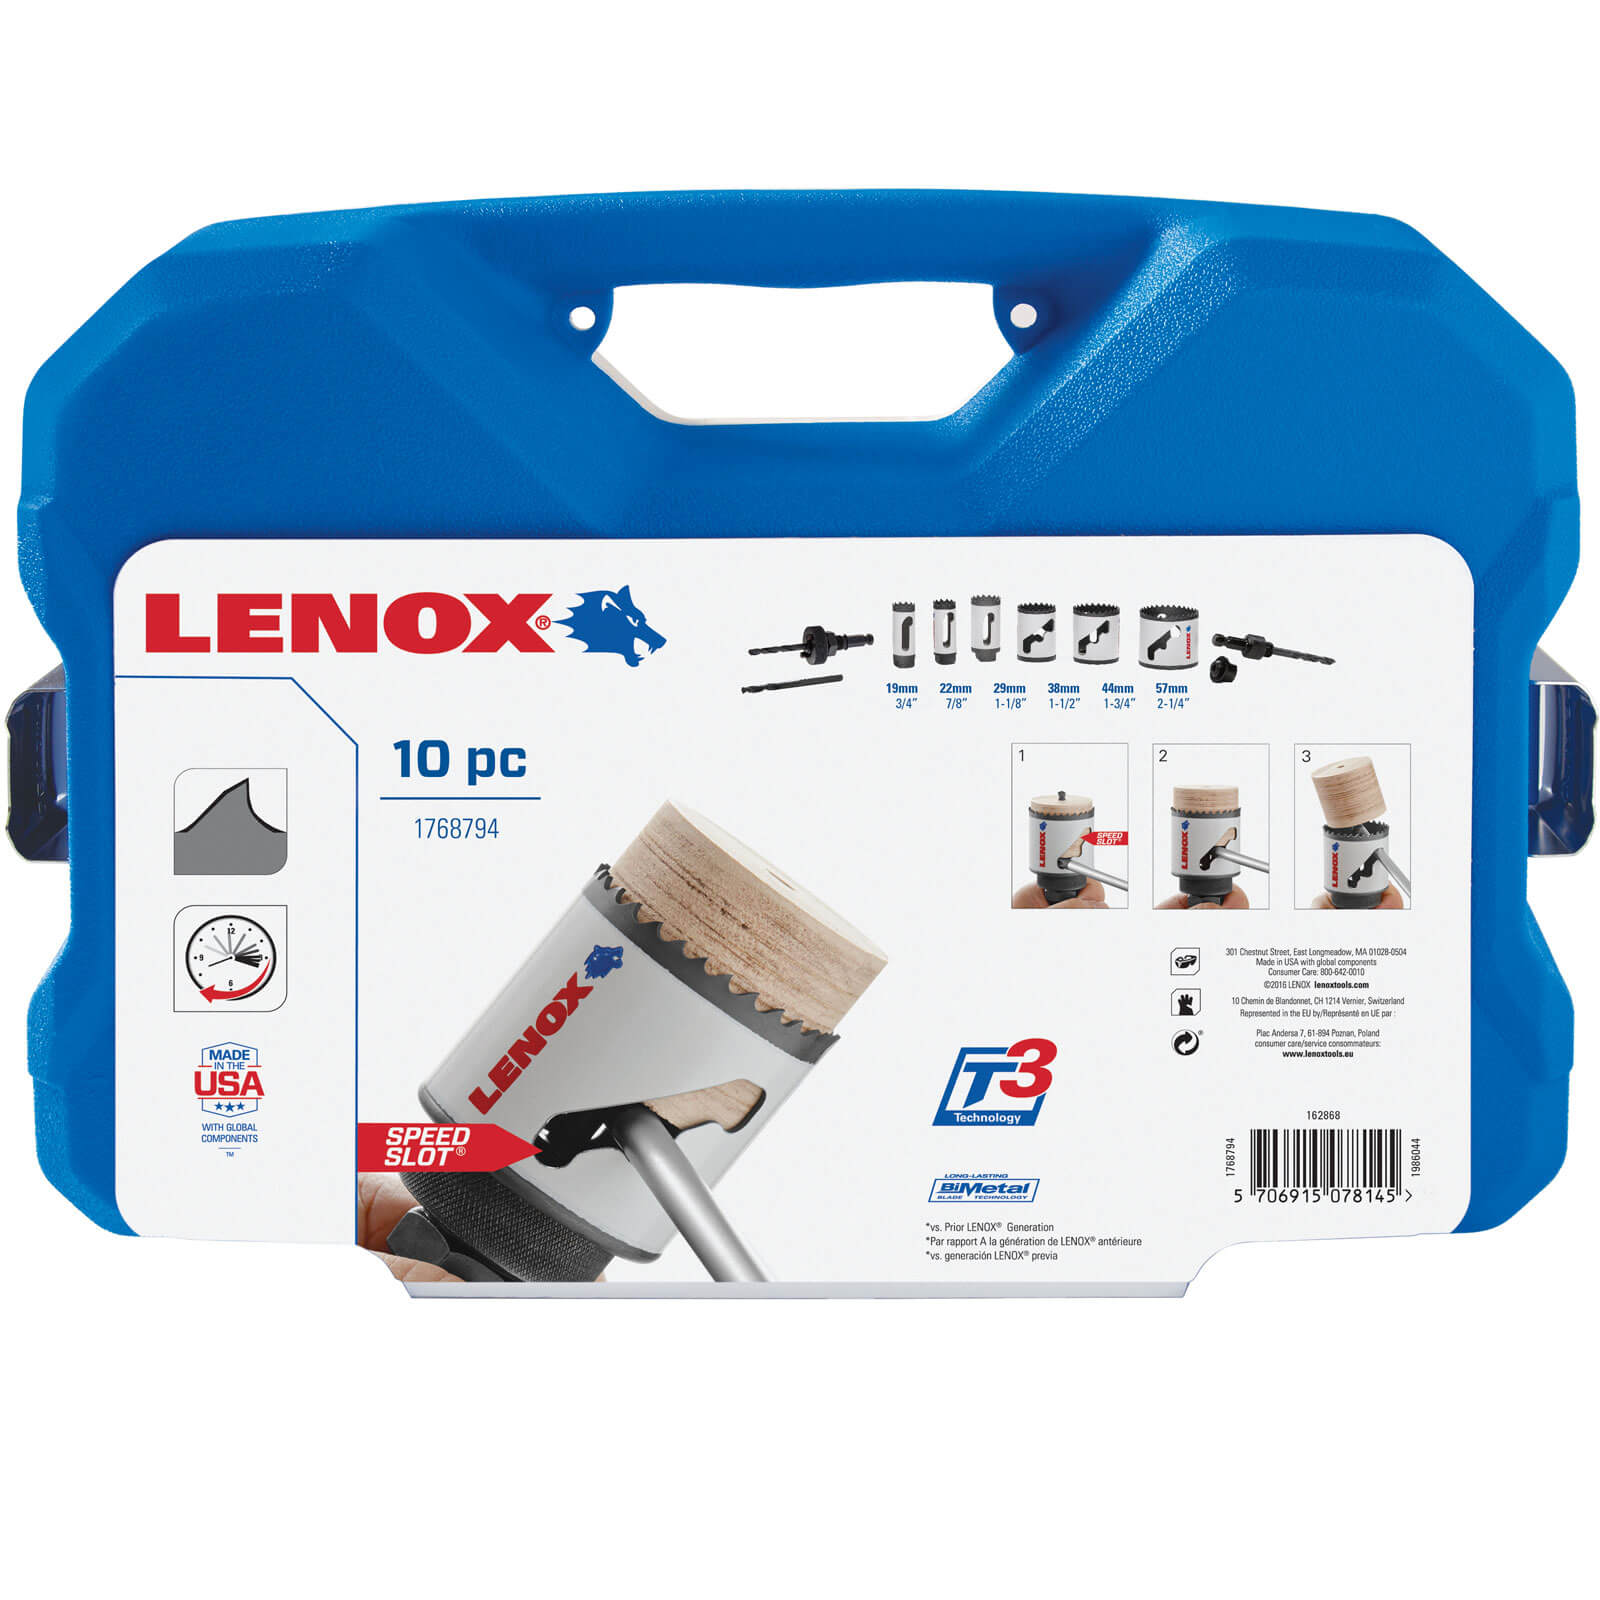 Image of Lenox 10 Piece Plumbers Hole Saw Set